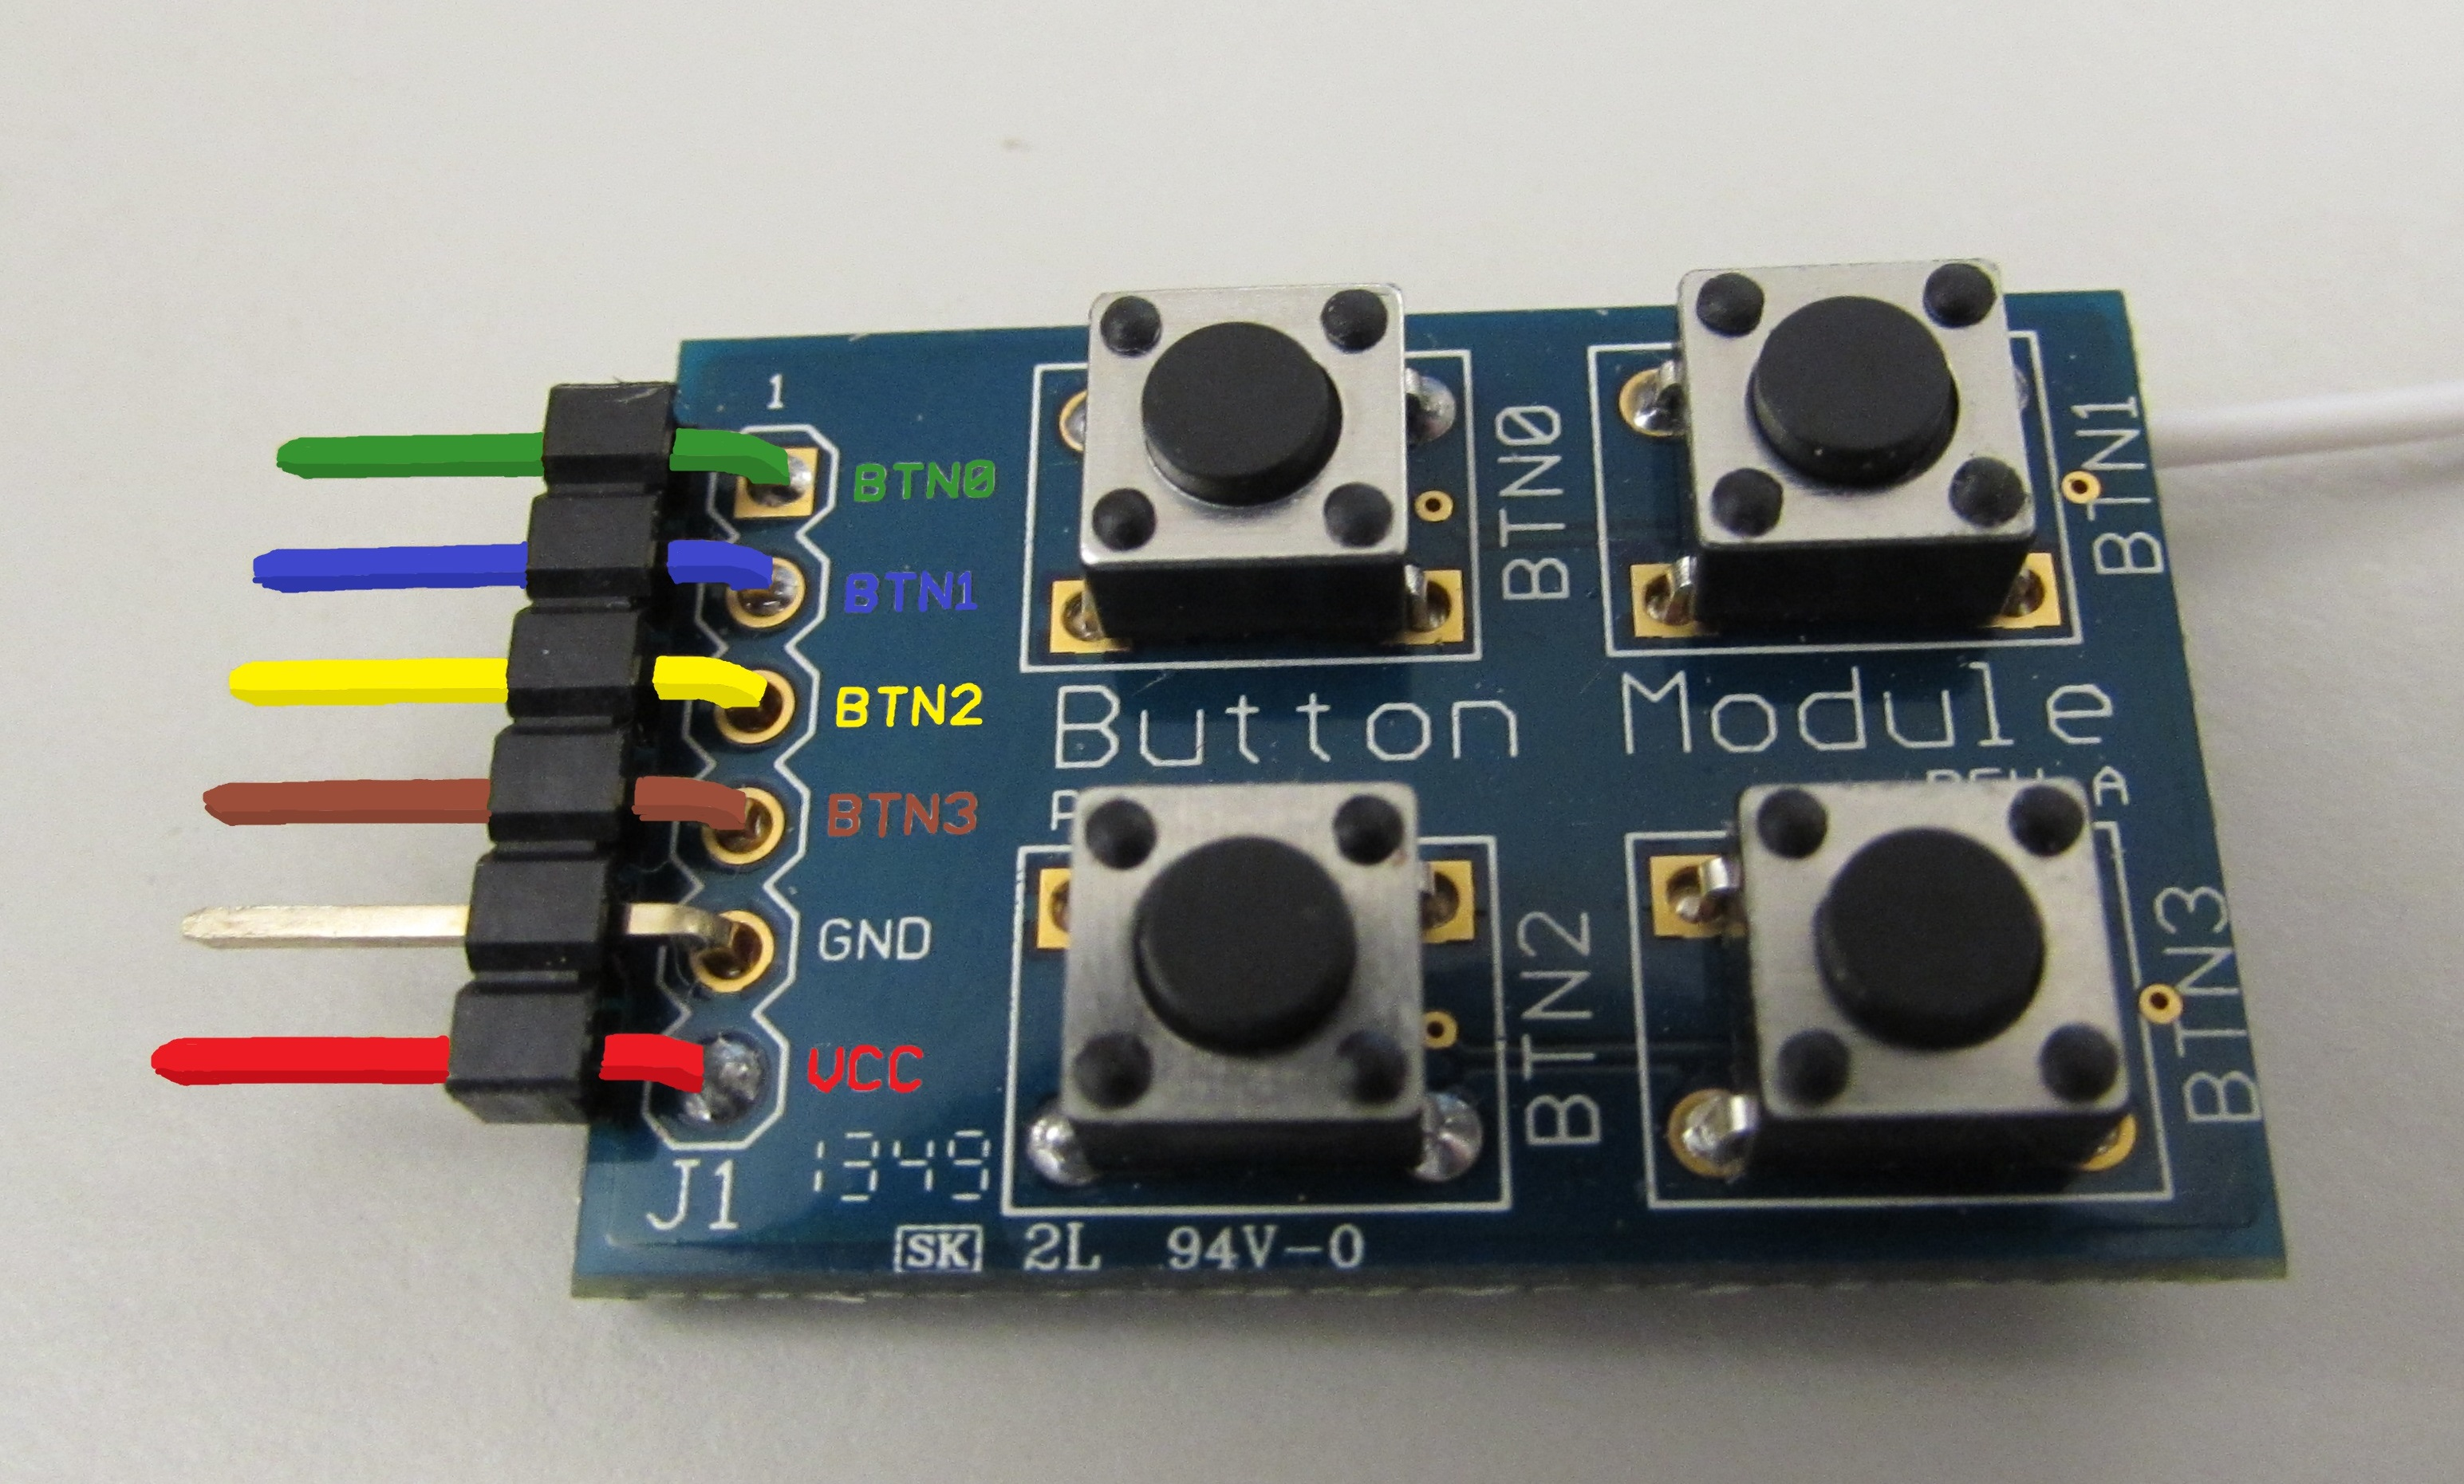 Digilent's GPIO Pmod Button Module